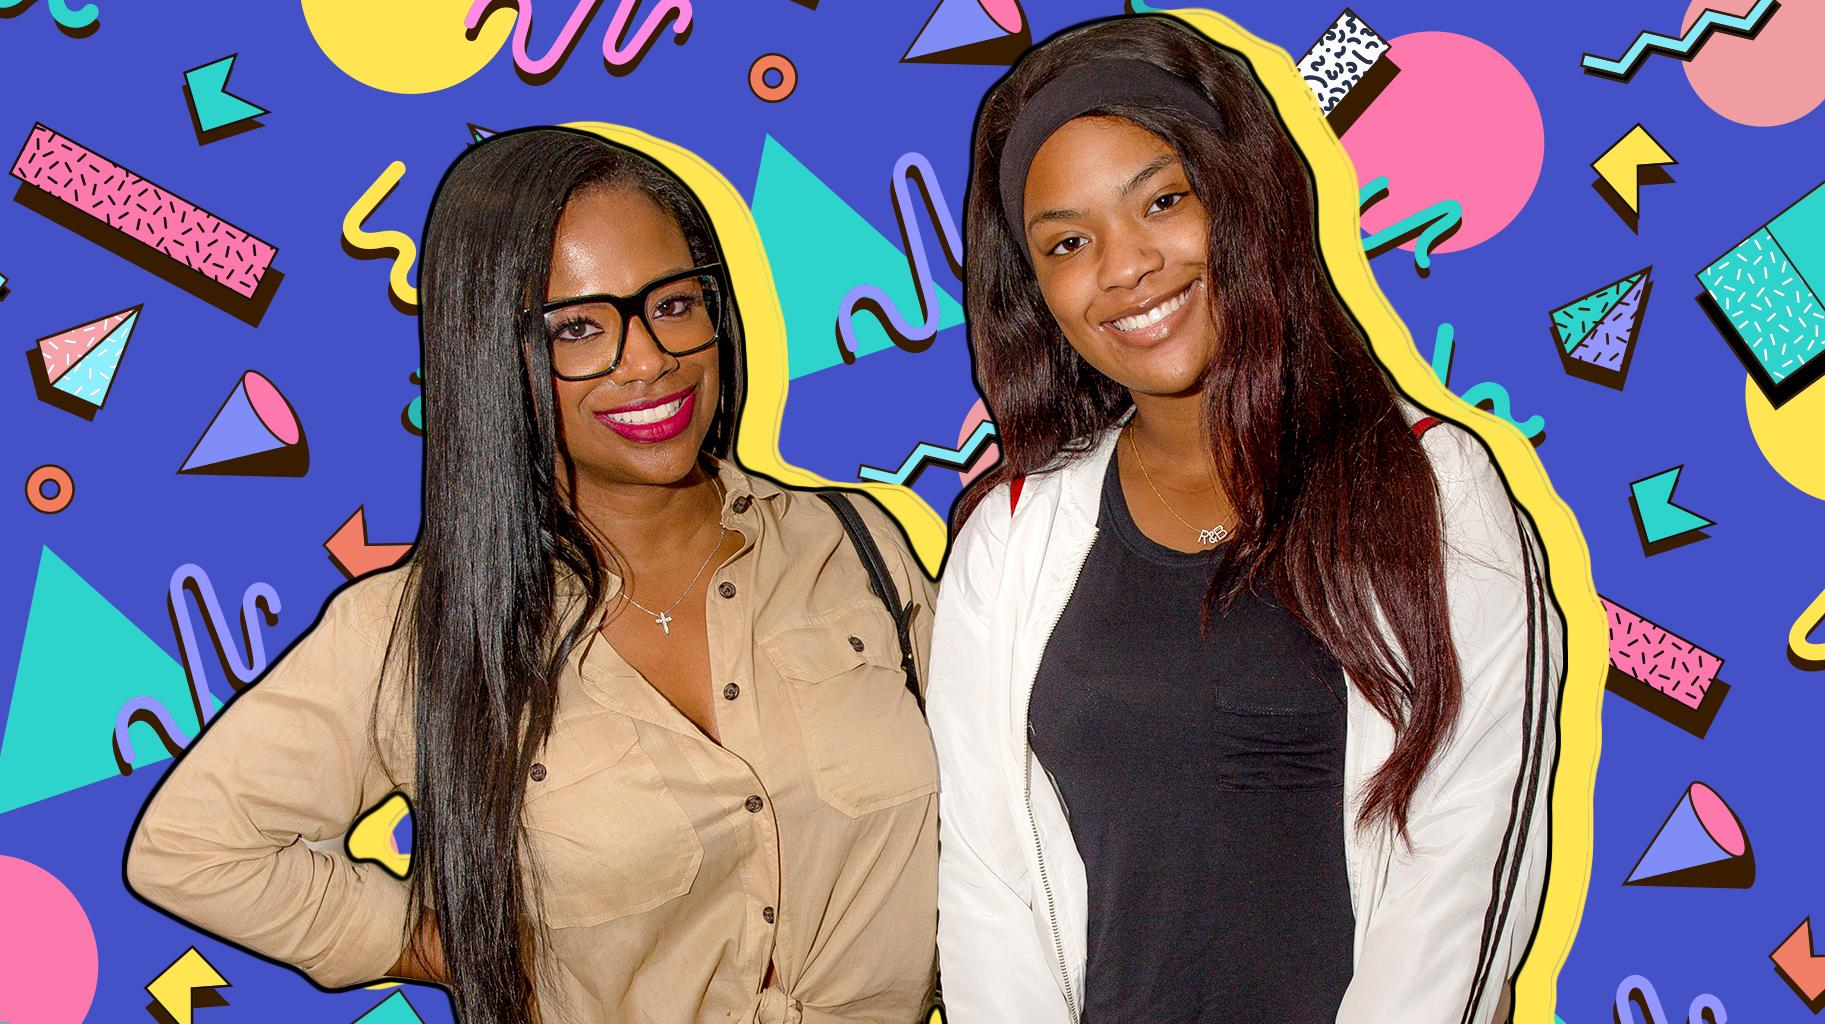 Kandi Burruss Goes To Tokyo With Her Daughter, Riley Burruss - Here Are The First Pics From Their Mommy-Daughter Trip